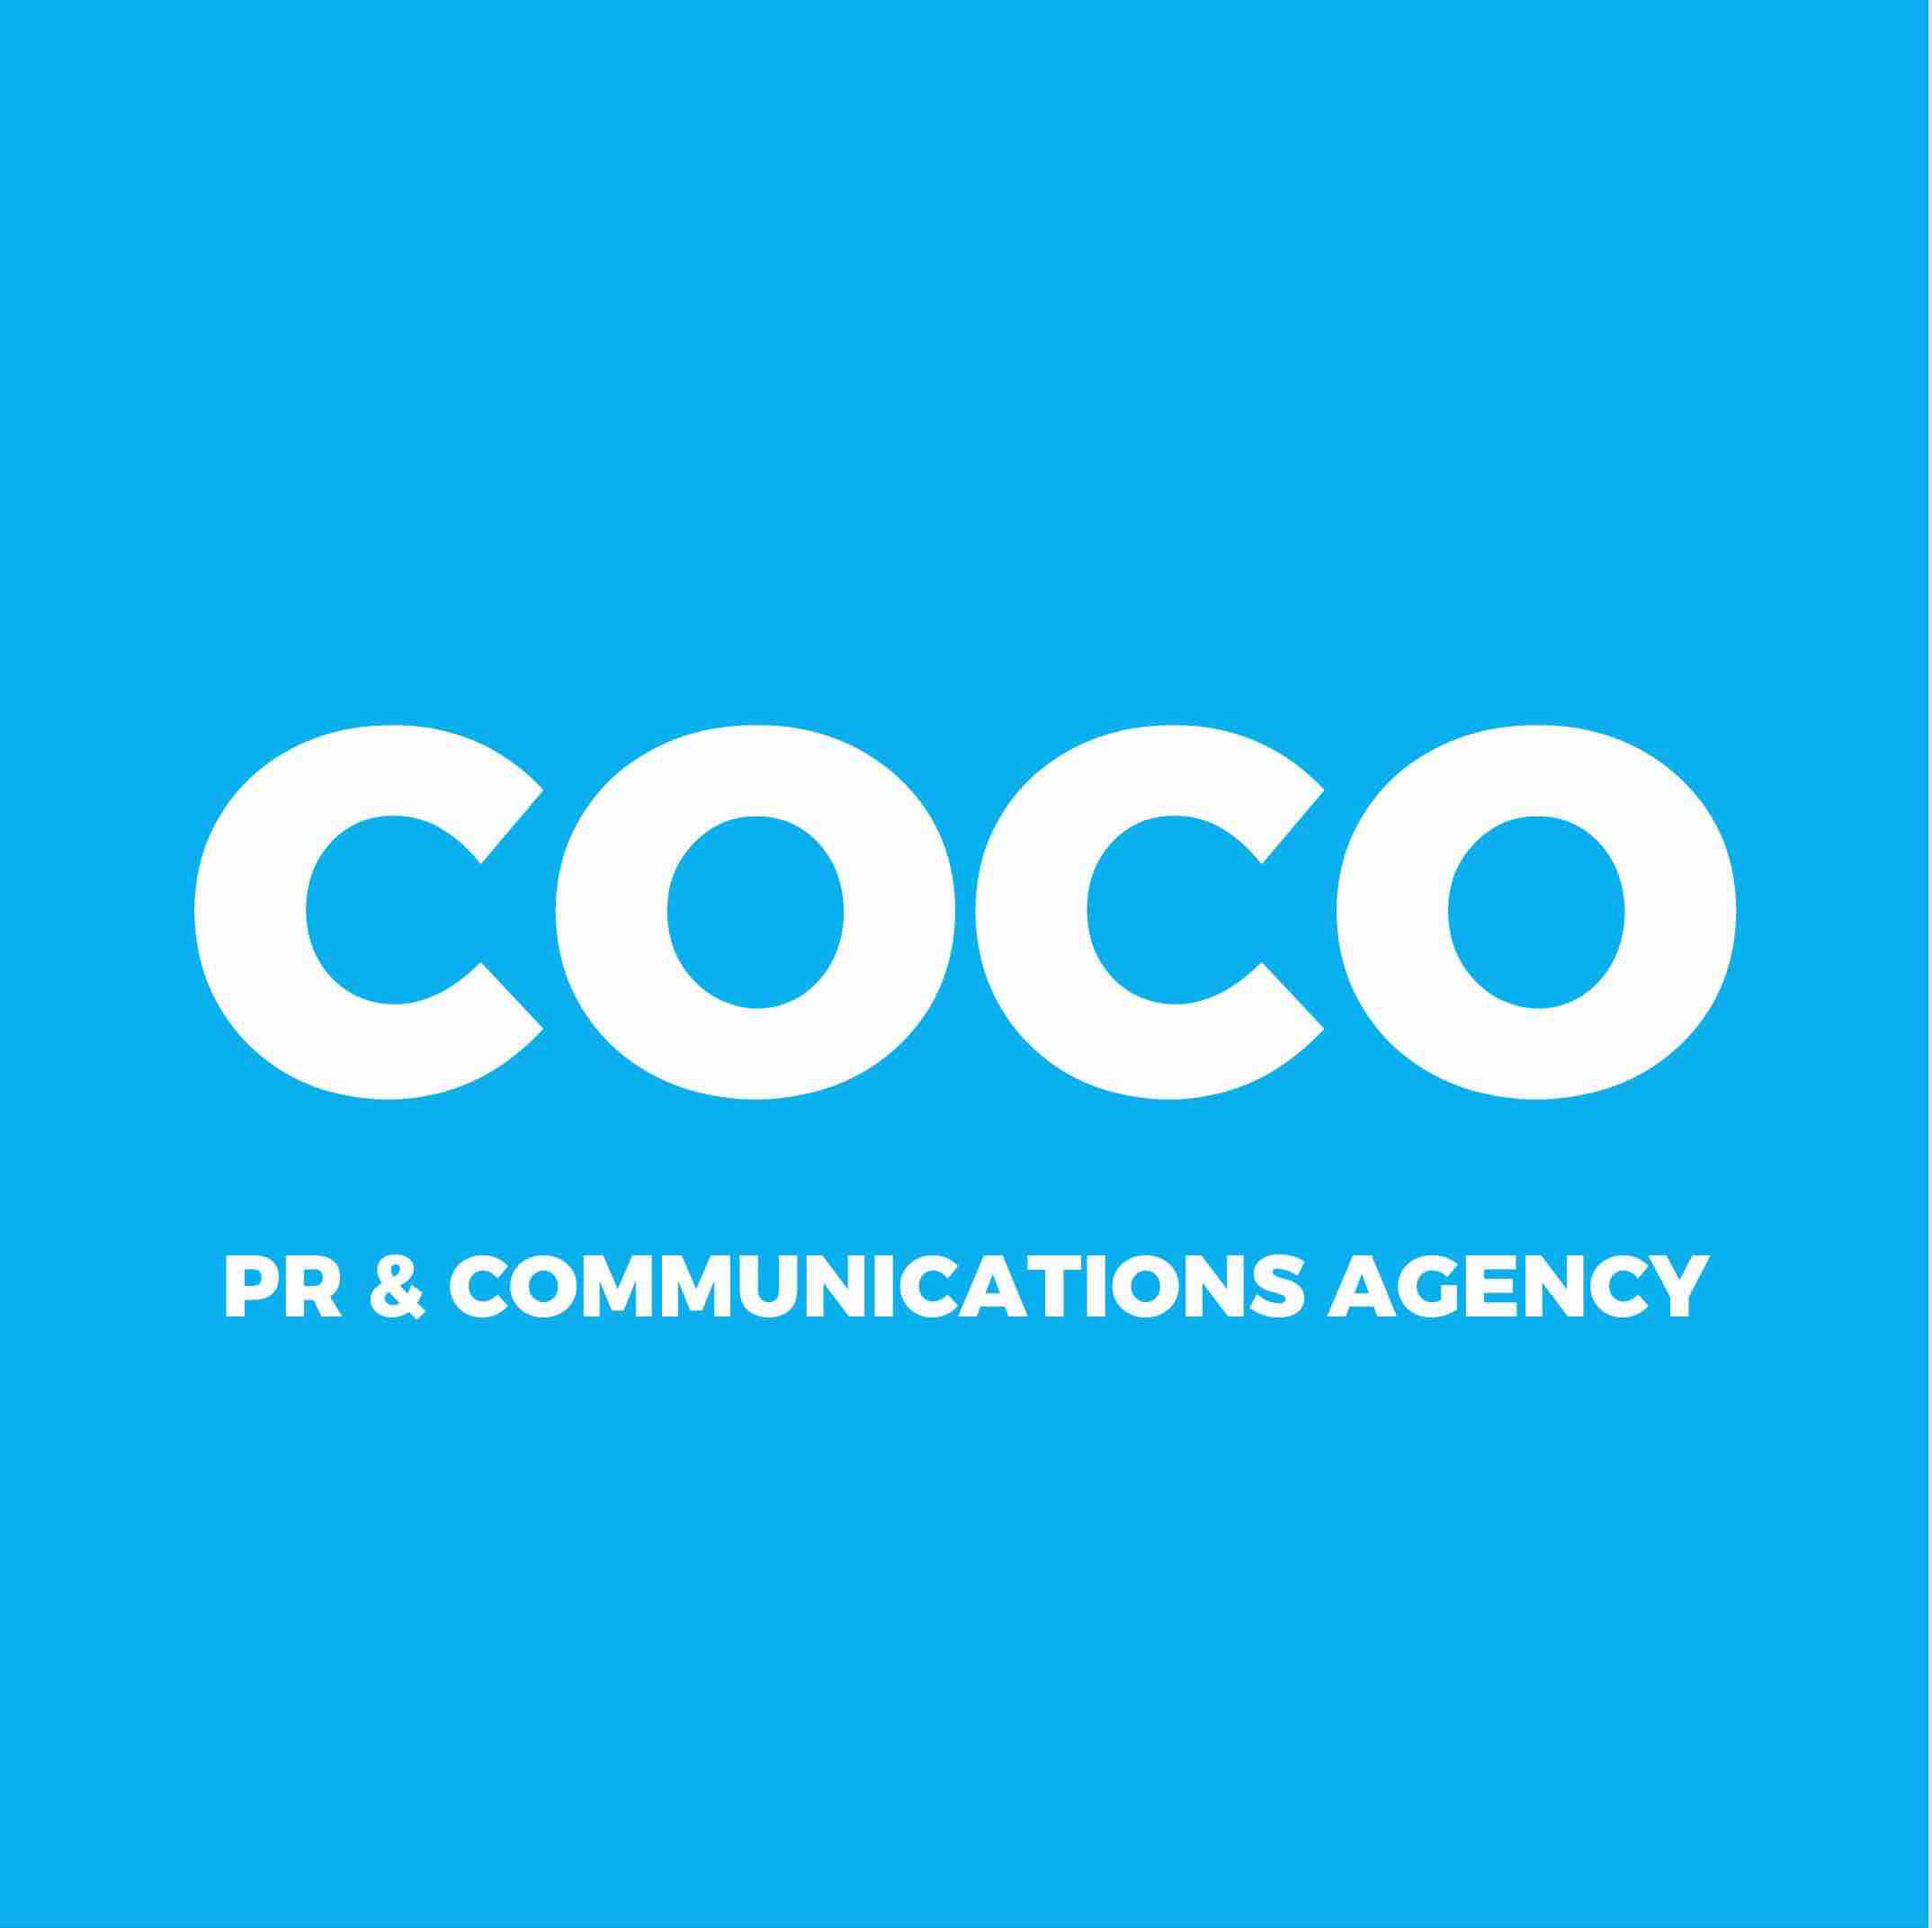 coco pr communications agency singapore